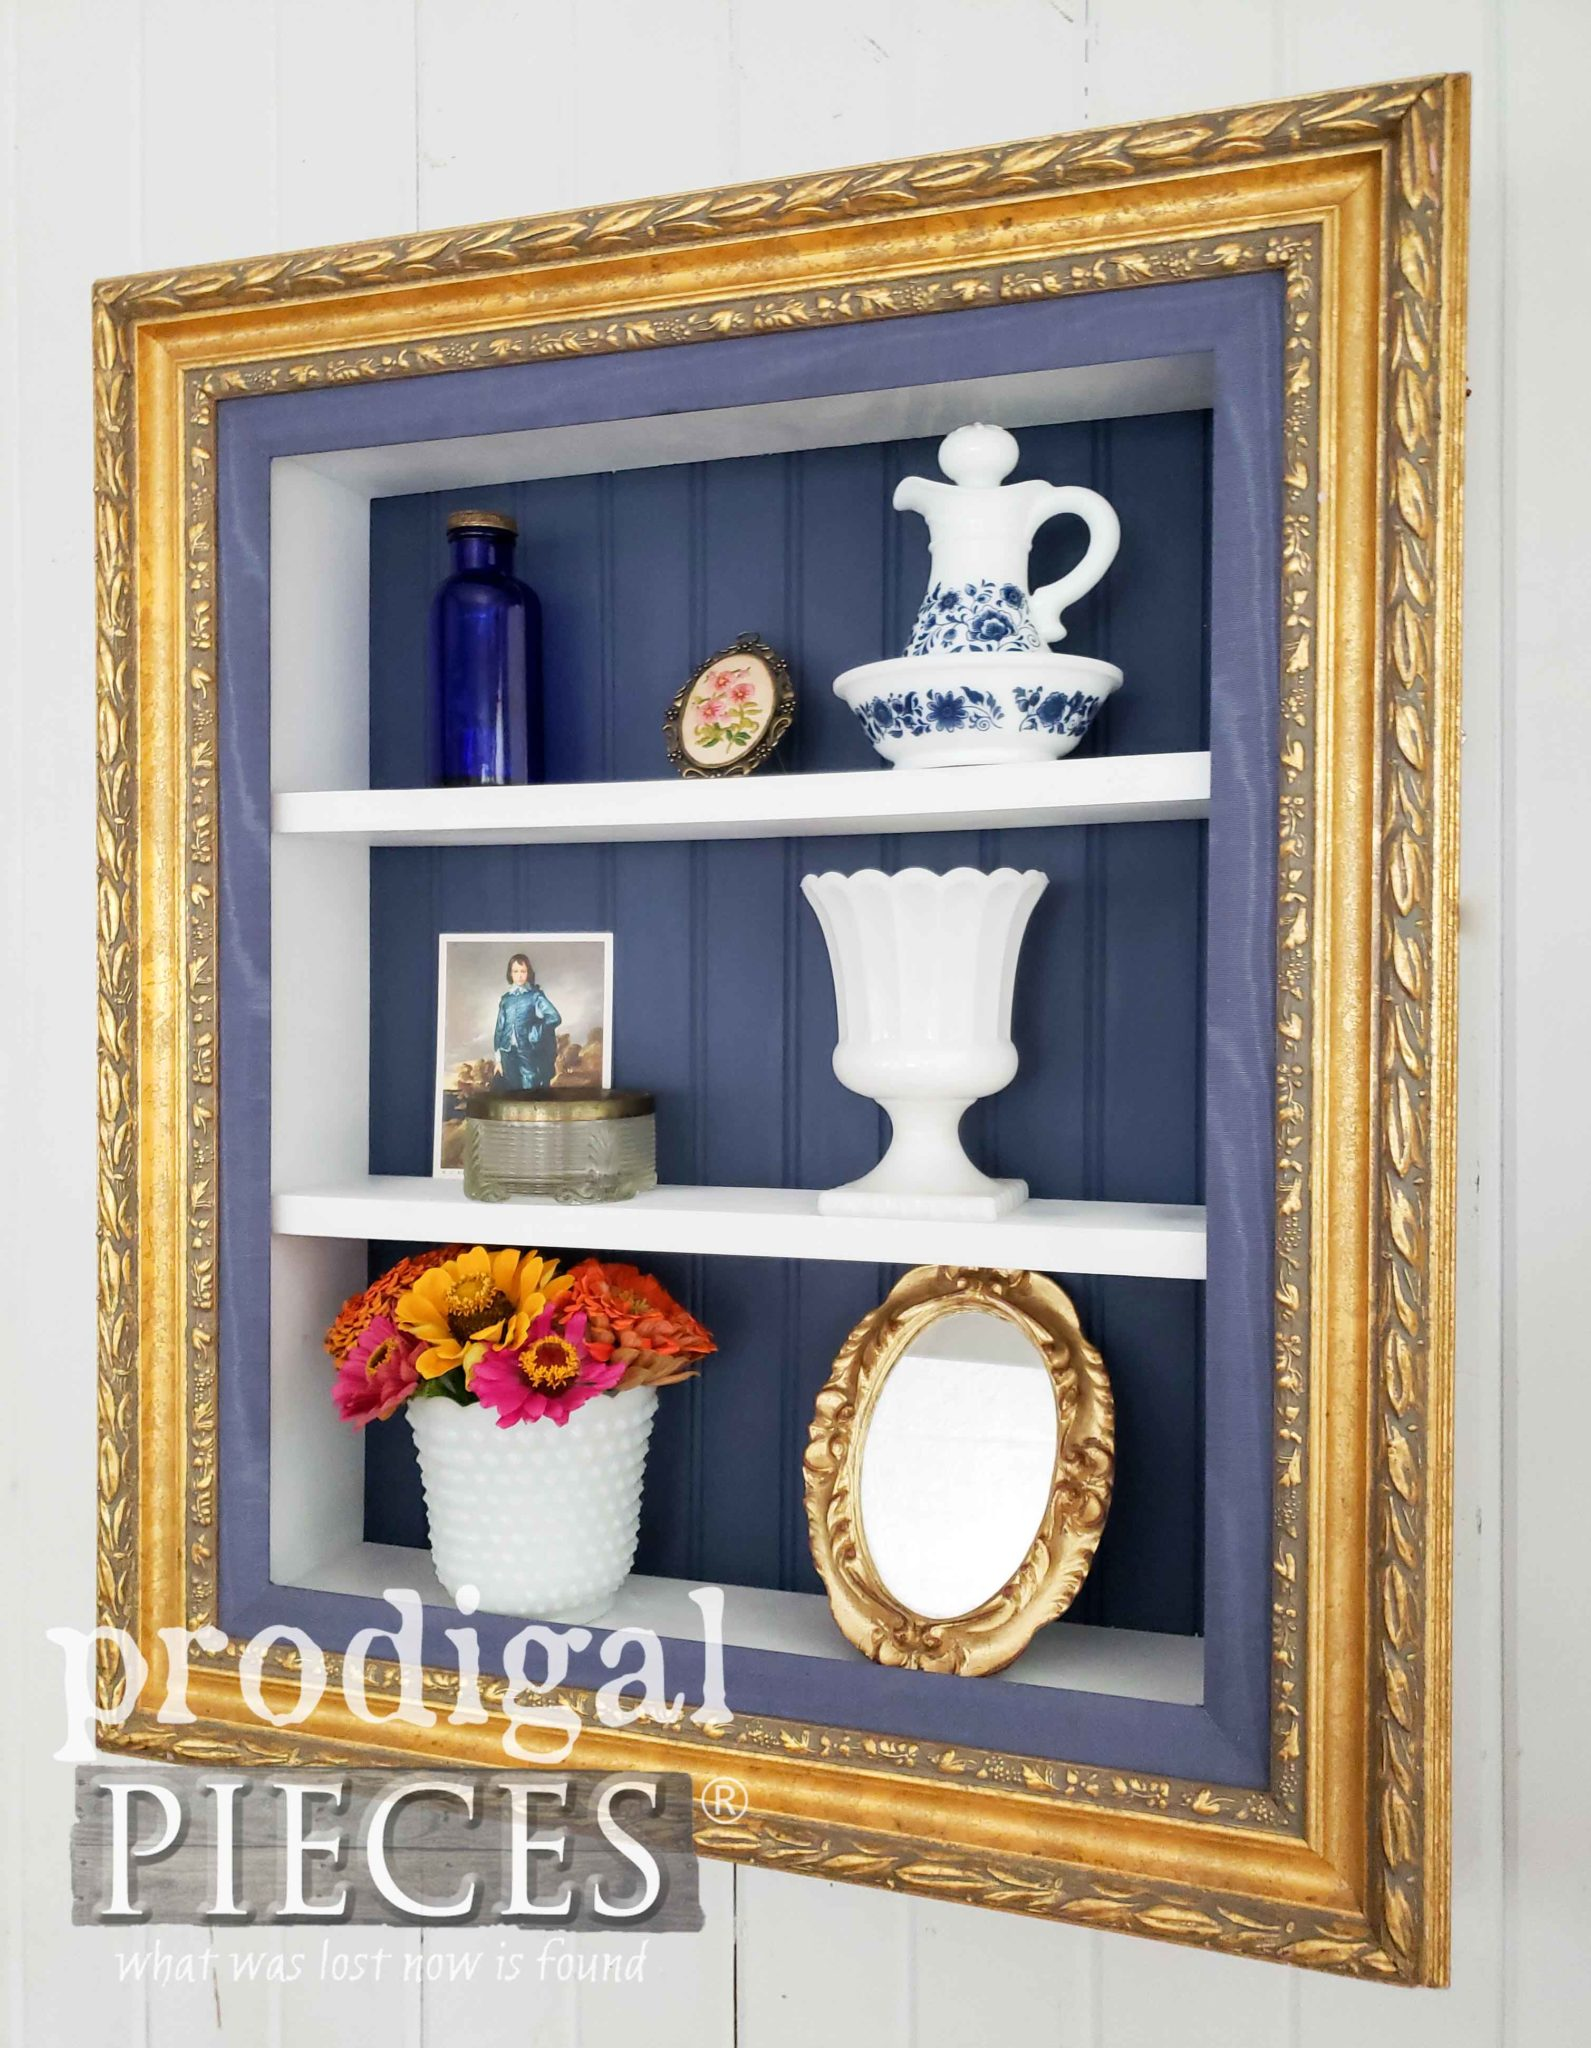 Handmade Upcycled Picture Frame Shelf with DIY Tutorial by Larissa of Prodigal Pieces | prodigalpieces.com